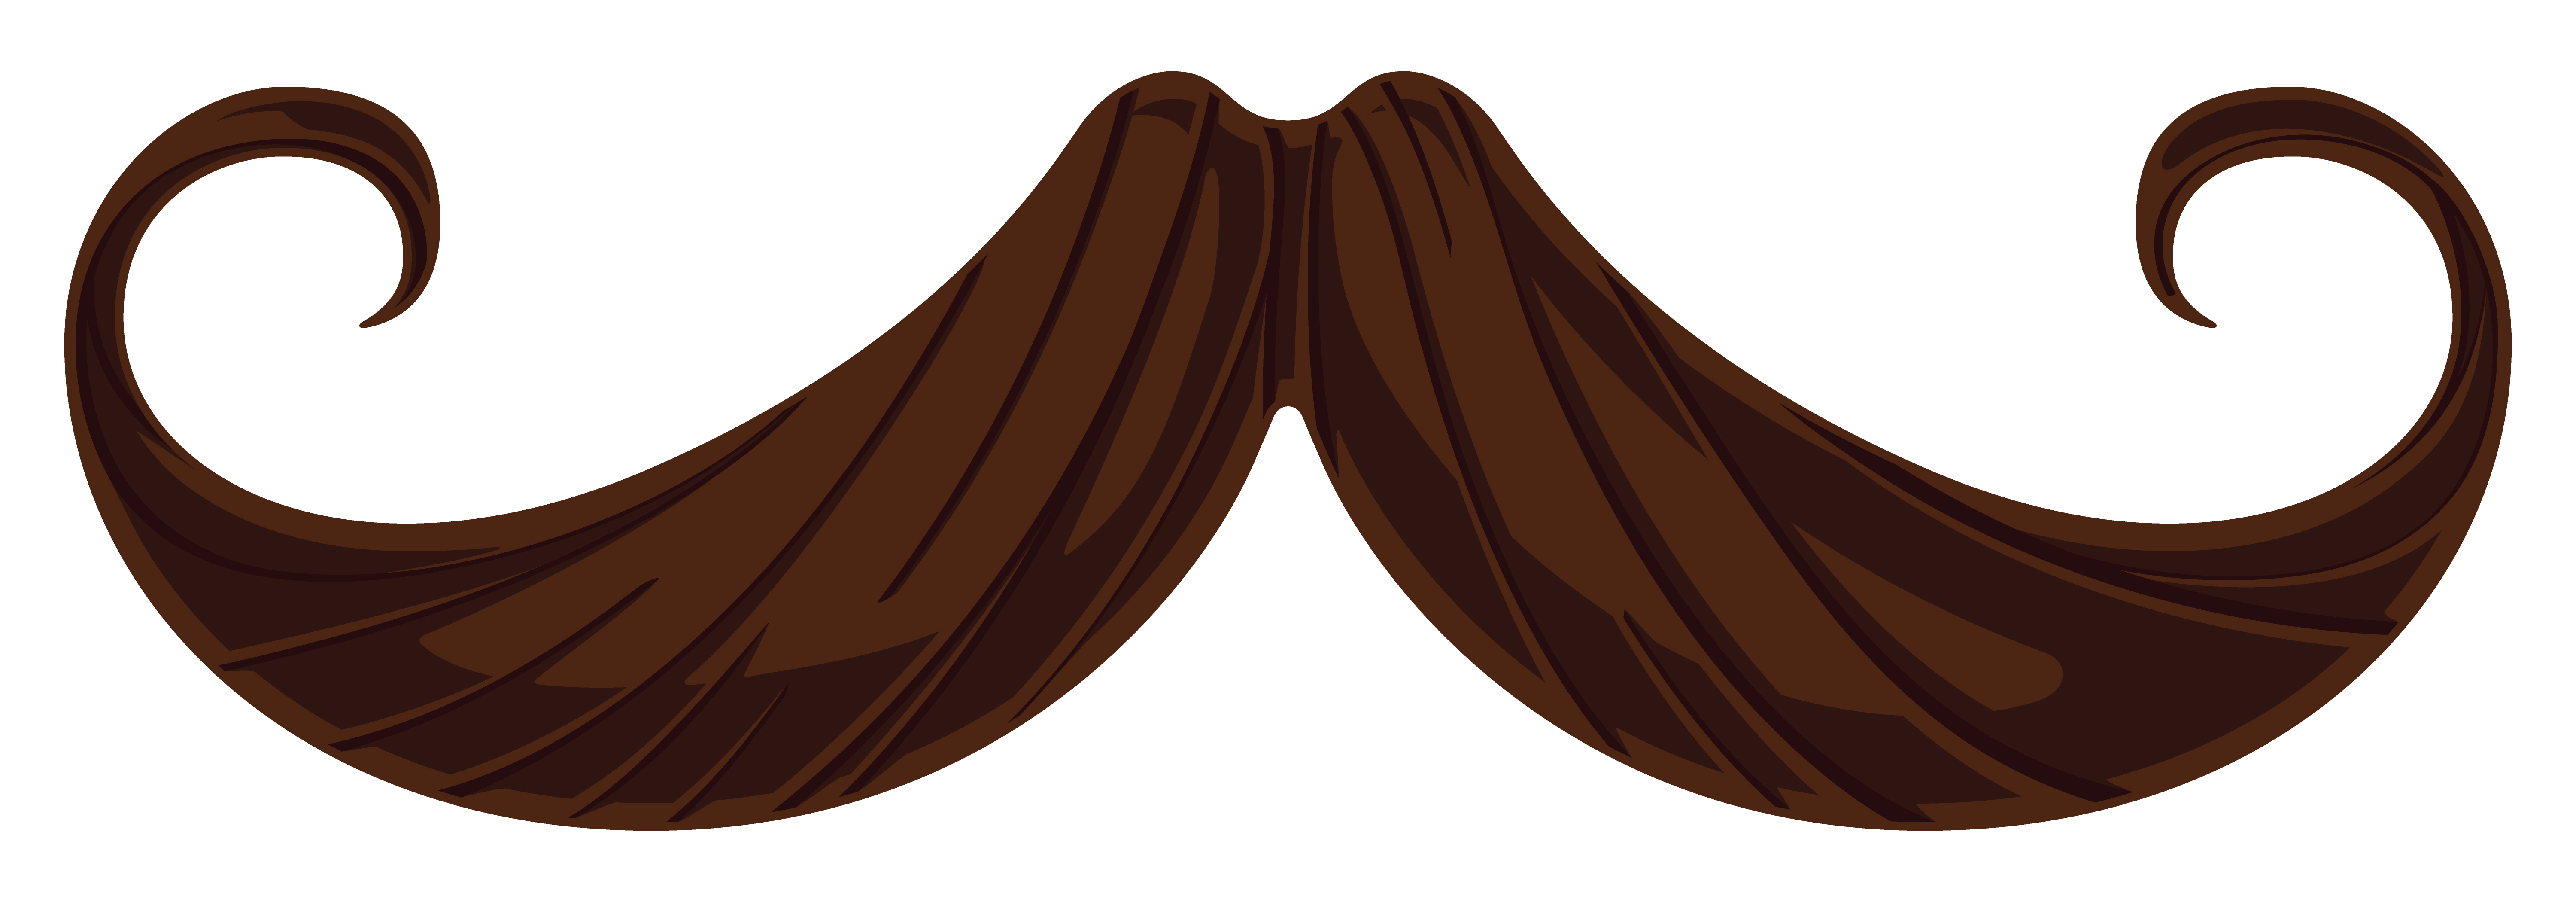 Western mustache clipart image library Free Mustache Cliparts, Download Free Clip Art, Free Clip ... image library